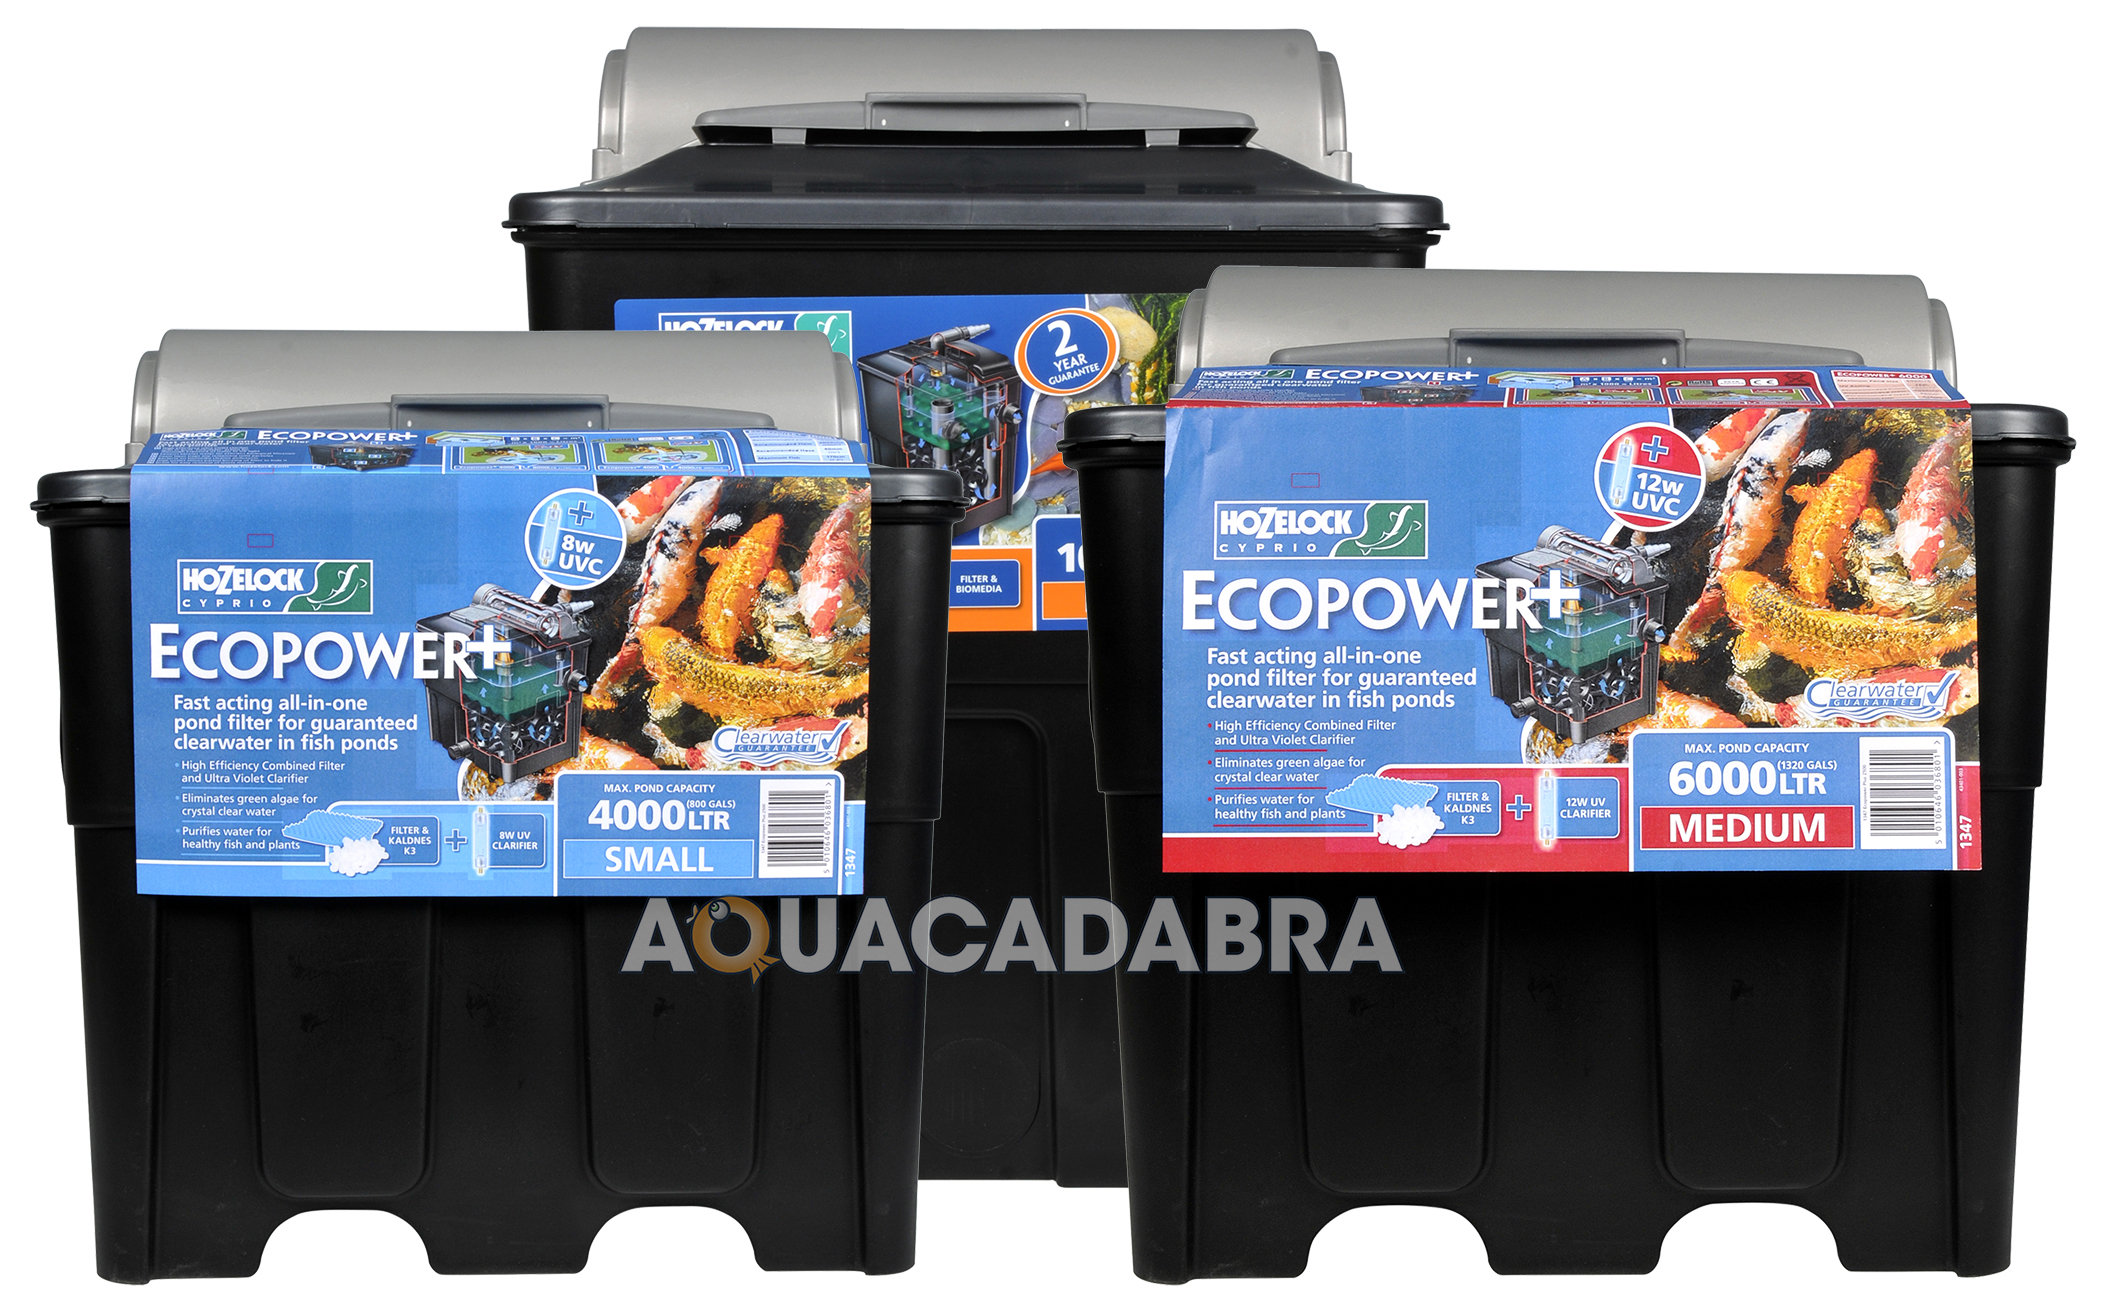 Hozelock Ecopower Pond Filter Uv Uvc Water Filtration